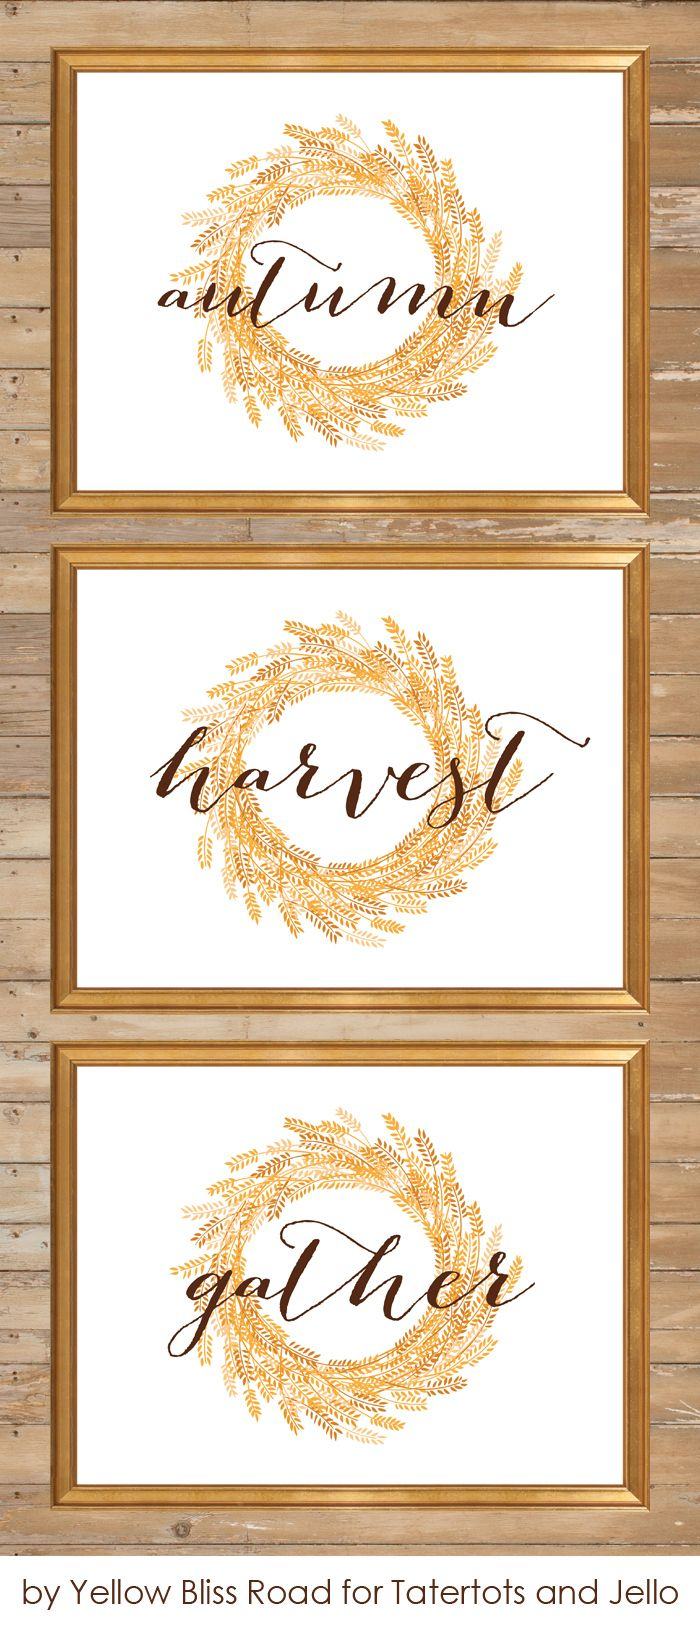 Fall Signs Free Printables by Yellow Bliss Road for TT&J!! #DIY #Falldecor